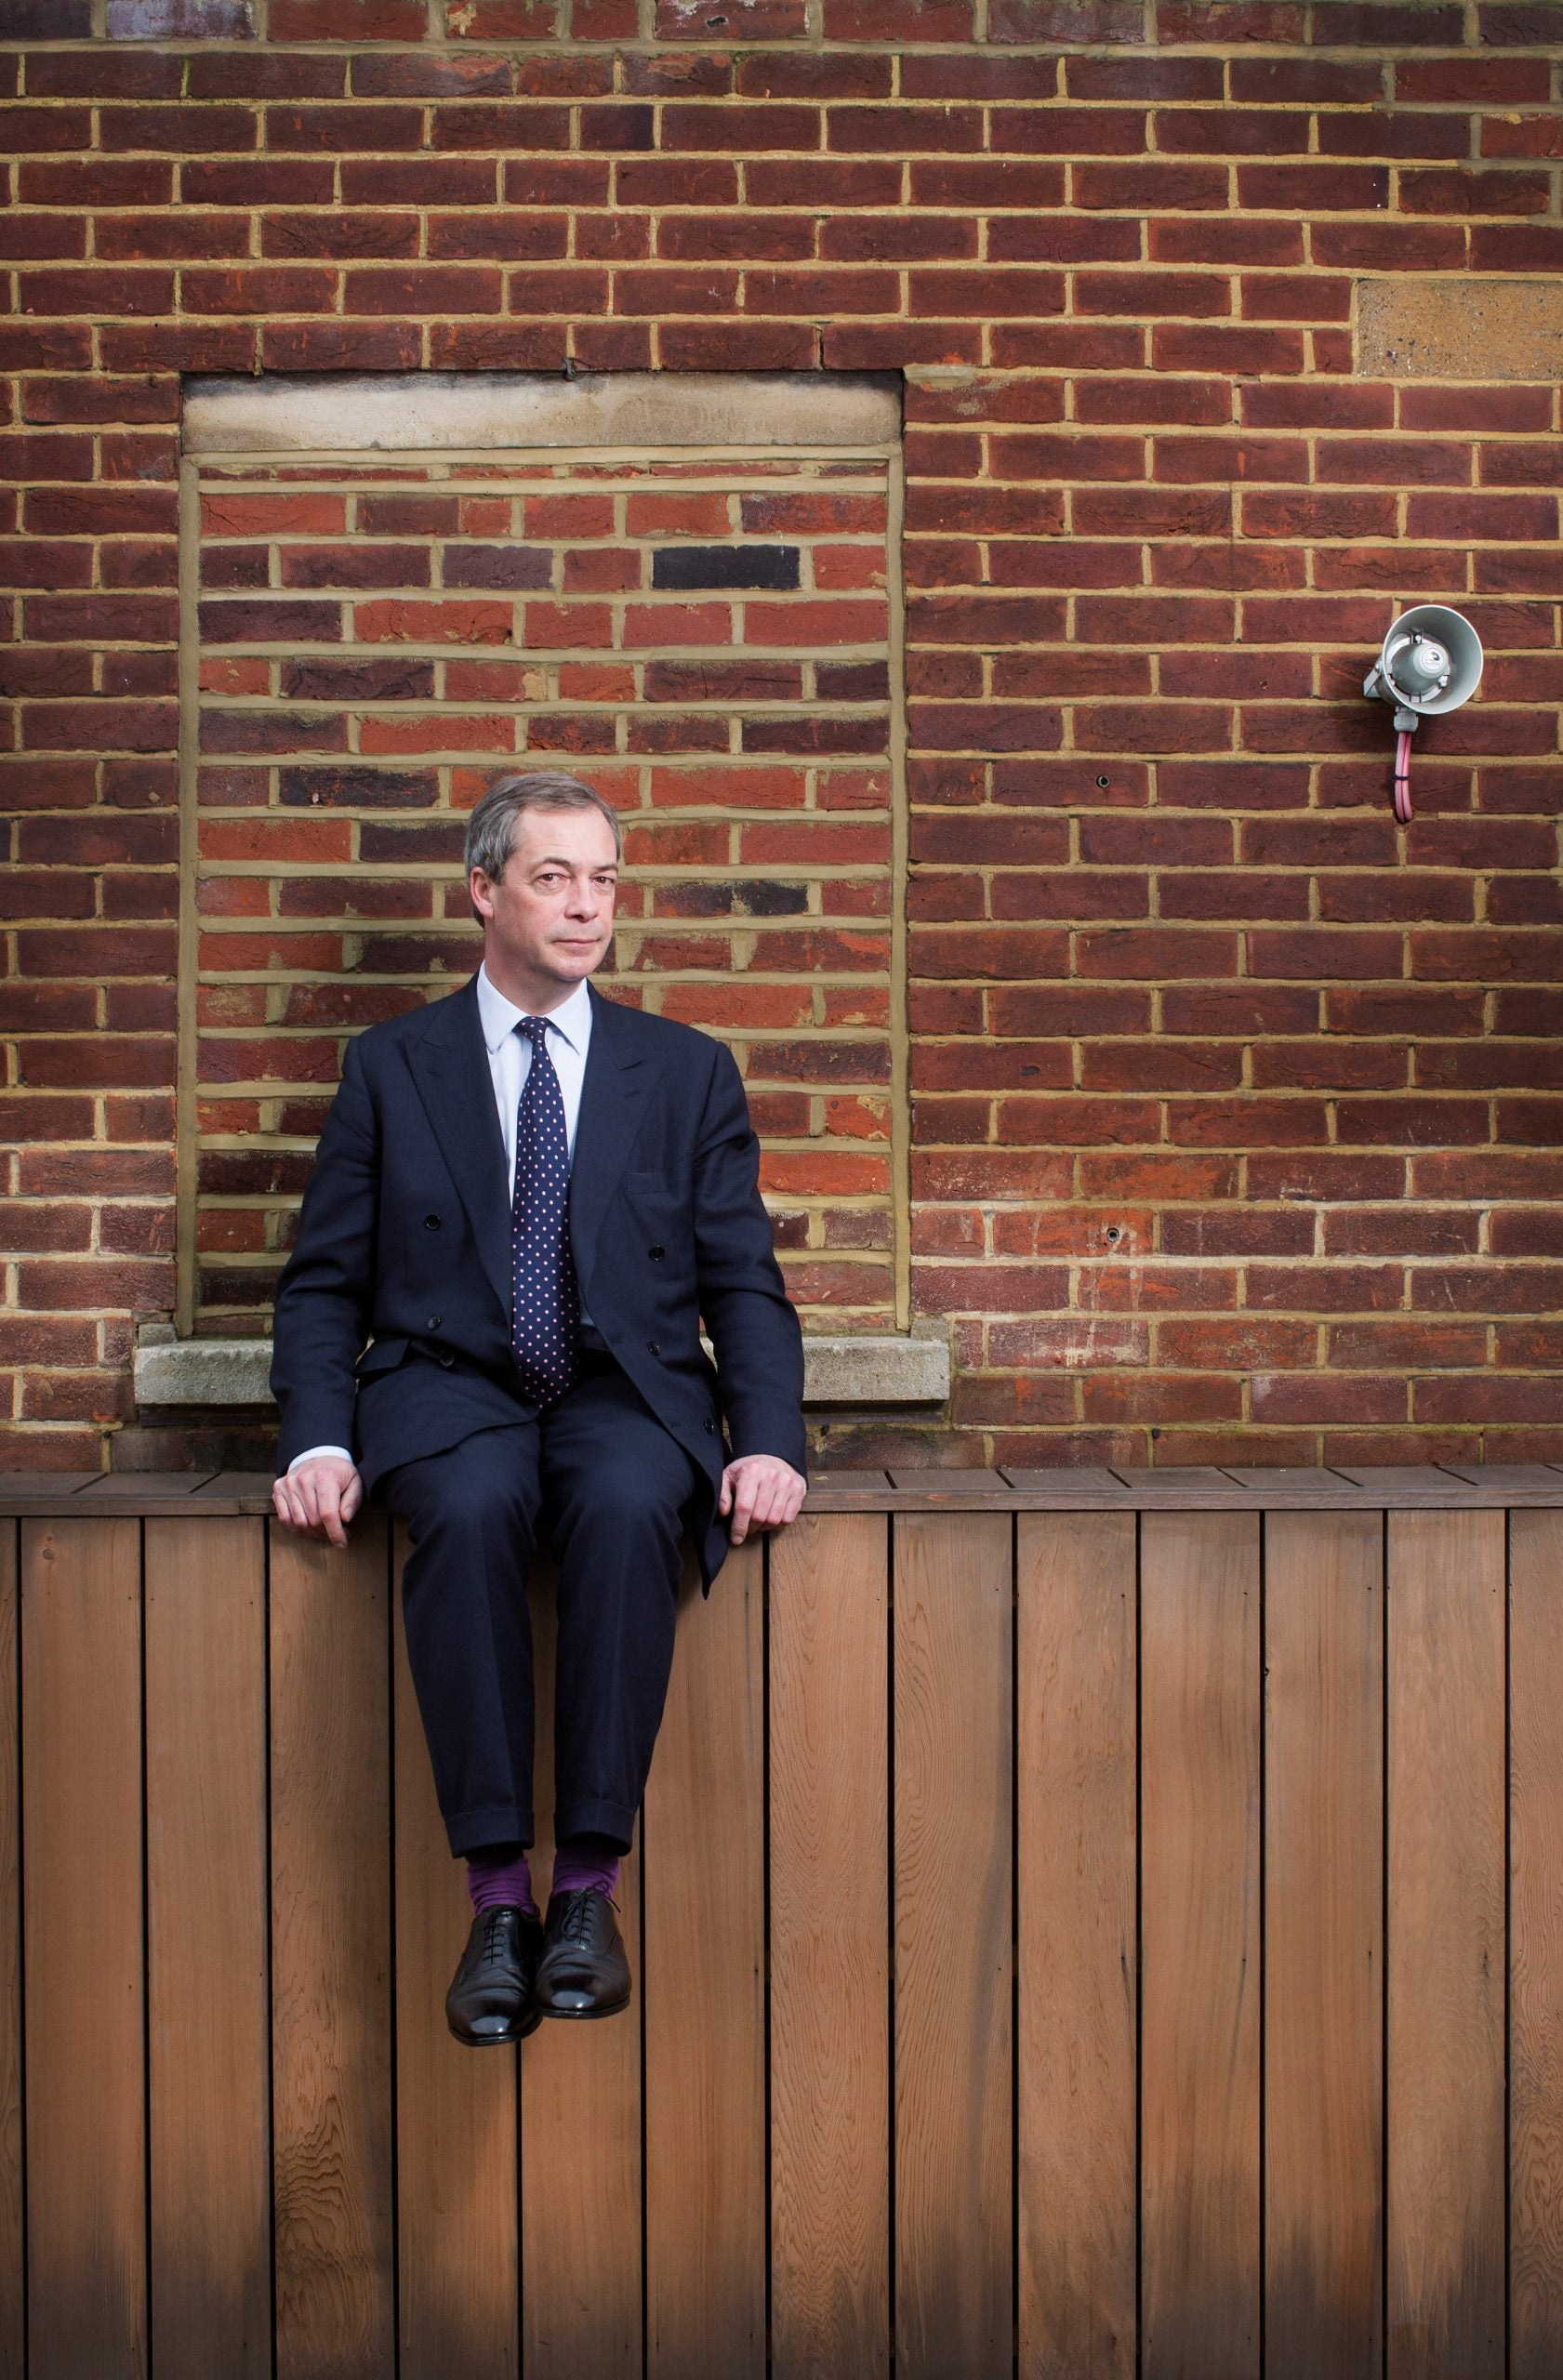 Nigel Farage: the arsonist in exile